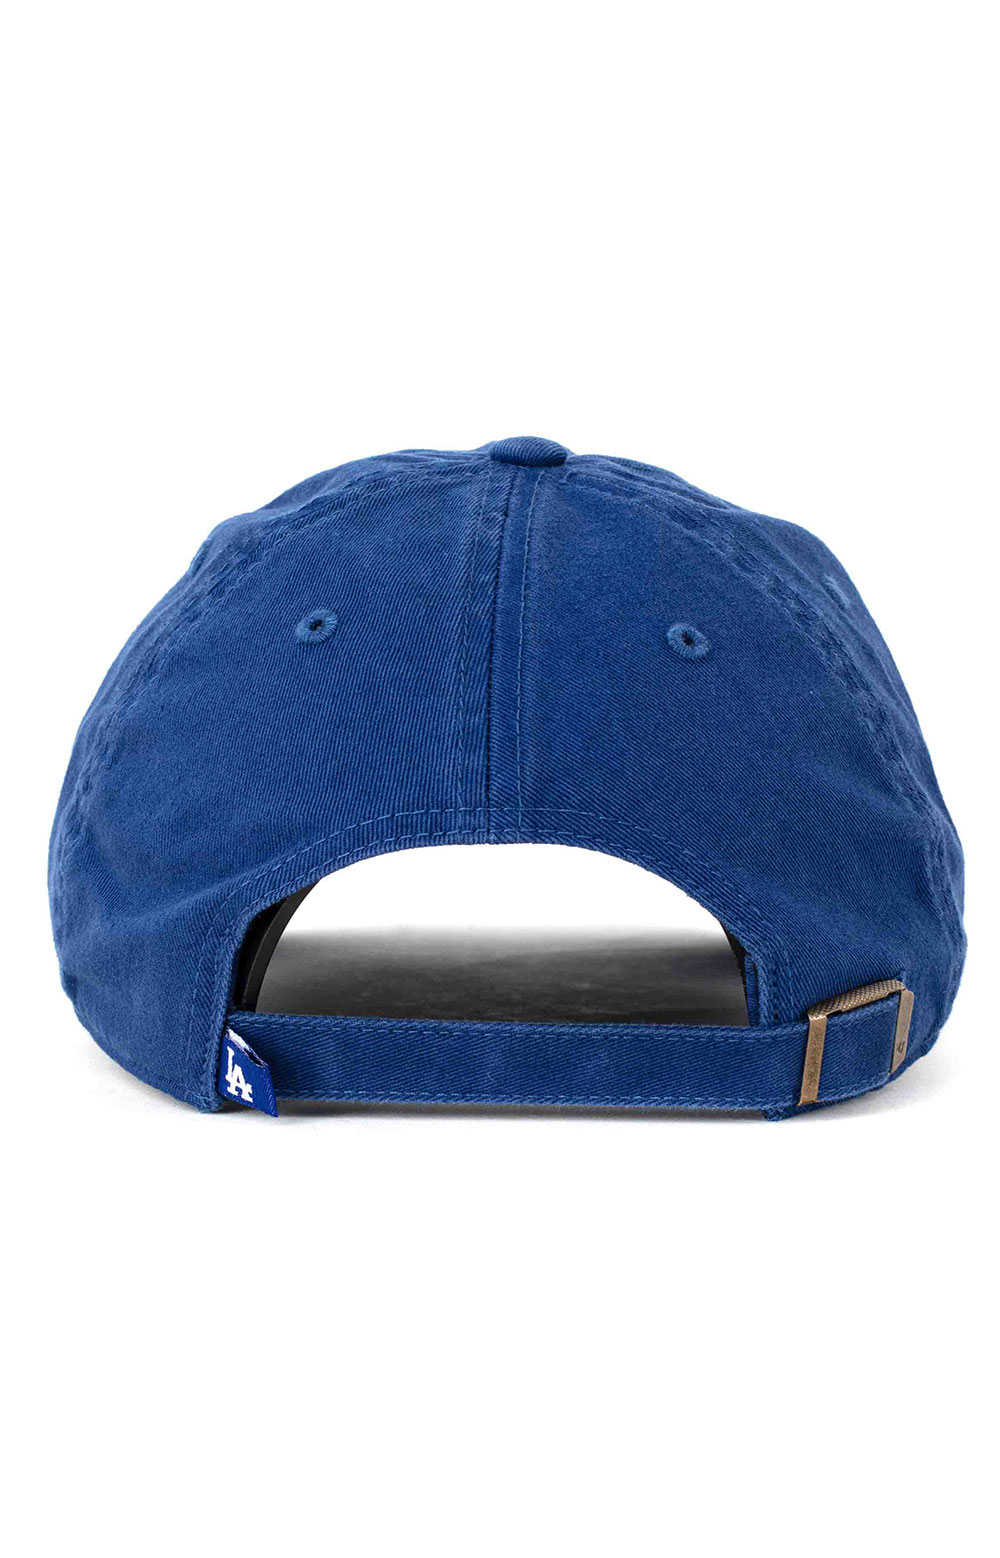 LA Dodgers Pride 47 Clean Up Cap - Royal Blue 3